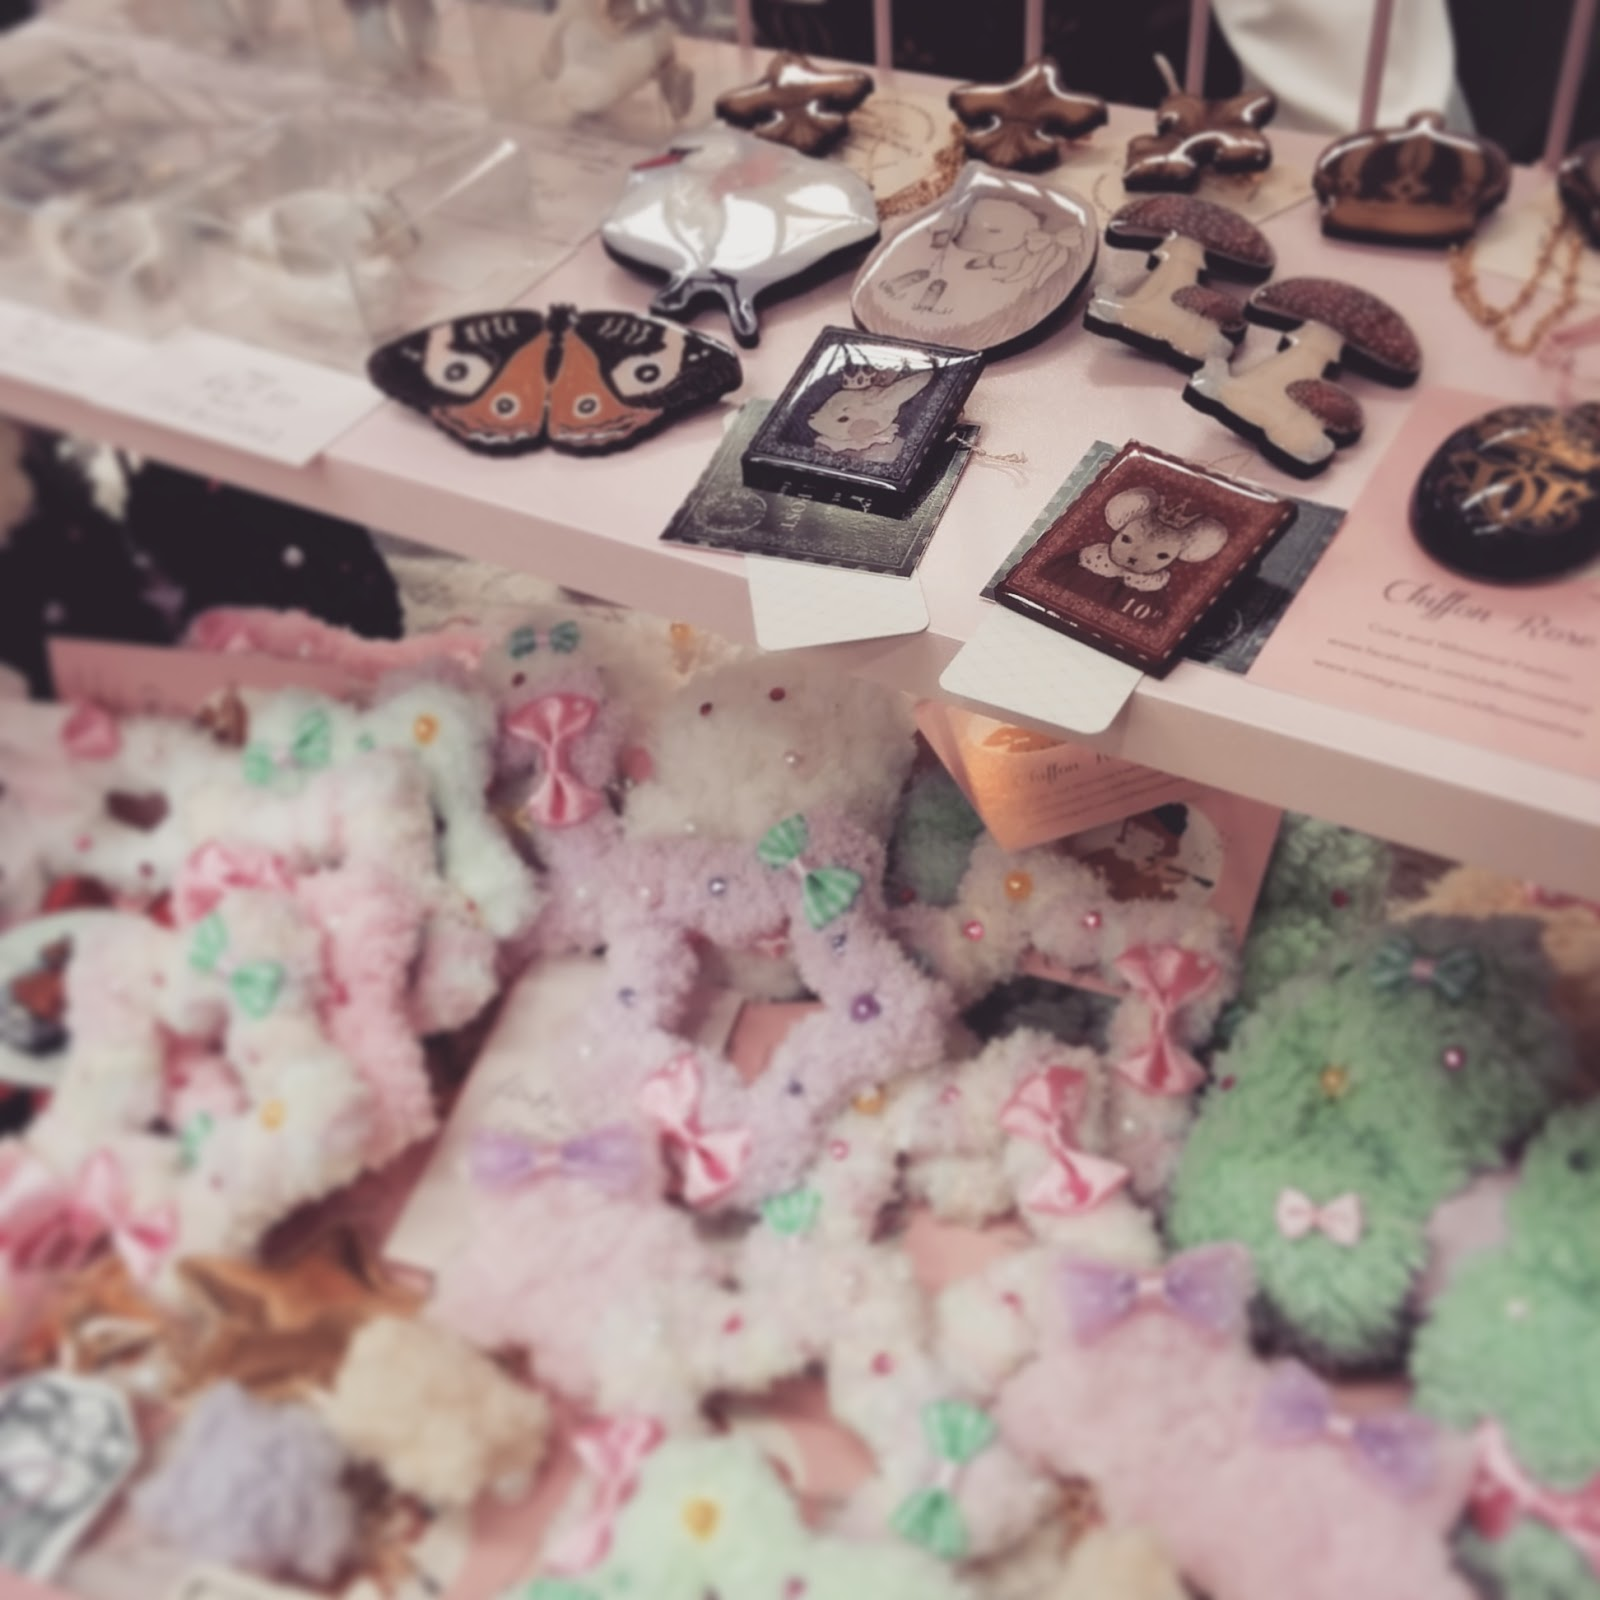 chiffon rose shop kawaii fashion cute woodland ilustration melbourne market supanova 2015